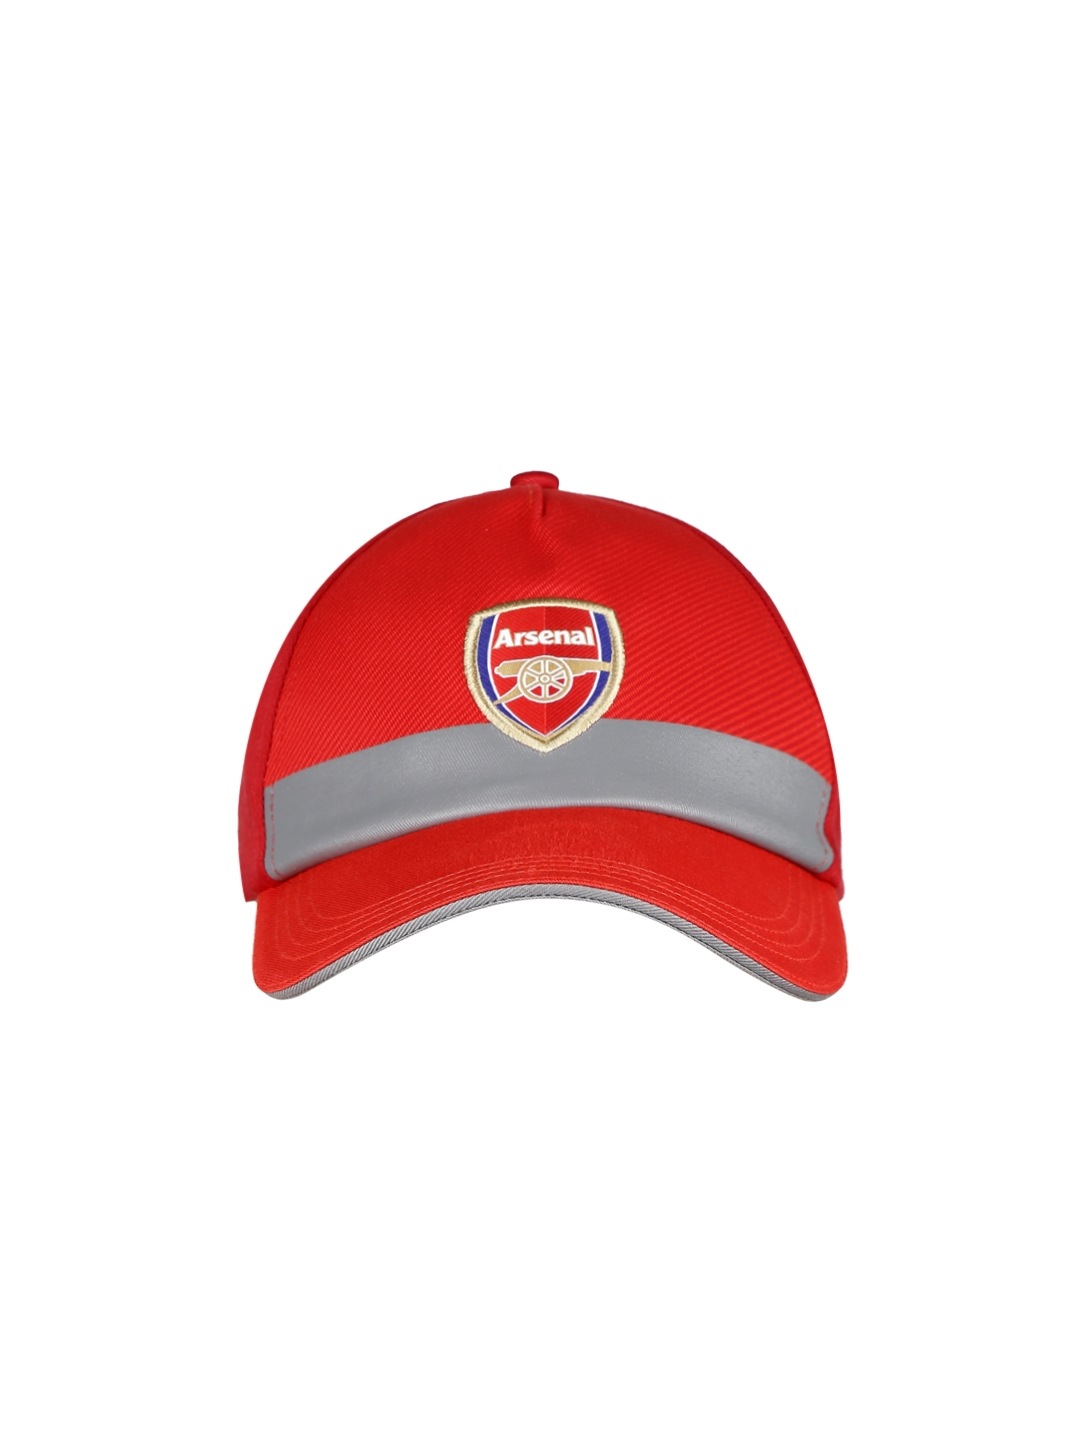 1e2bf365eae ... new arrivals puma unisex red arsenal cap ed226 b1386